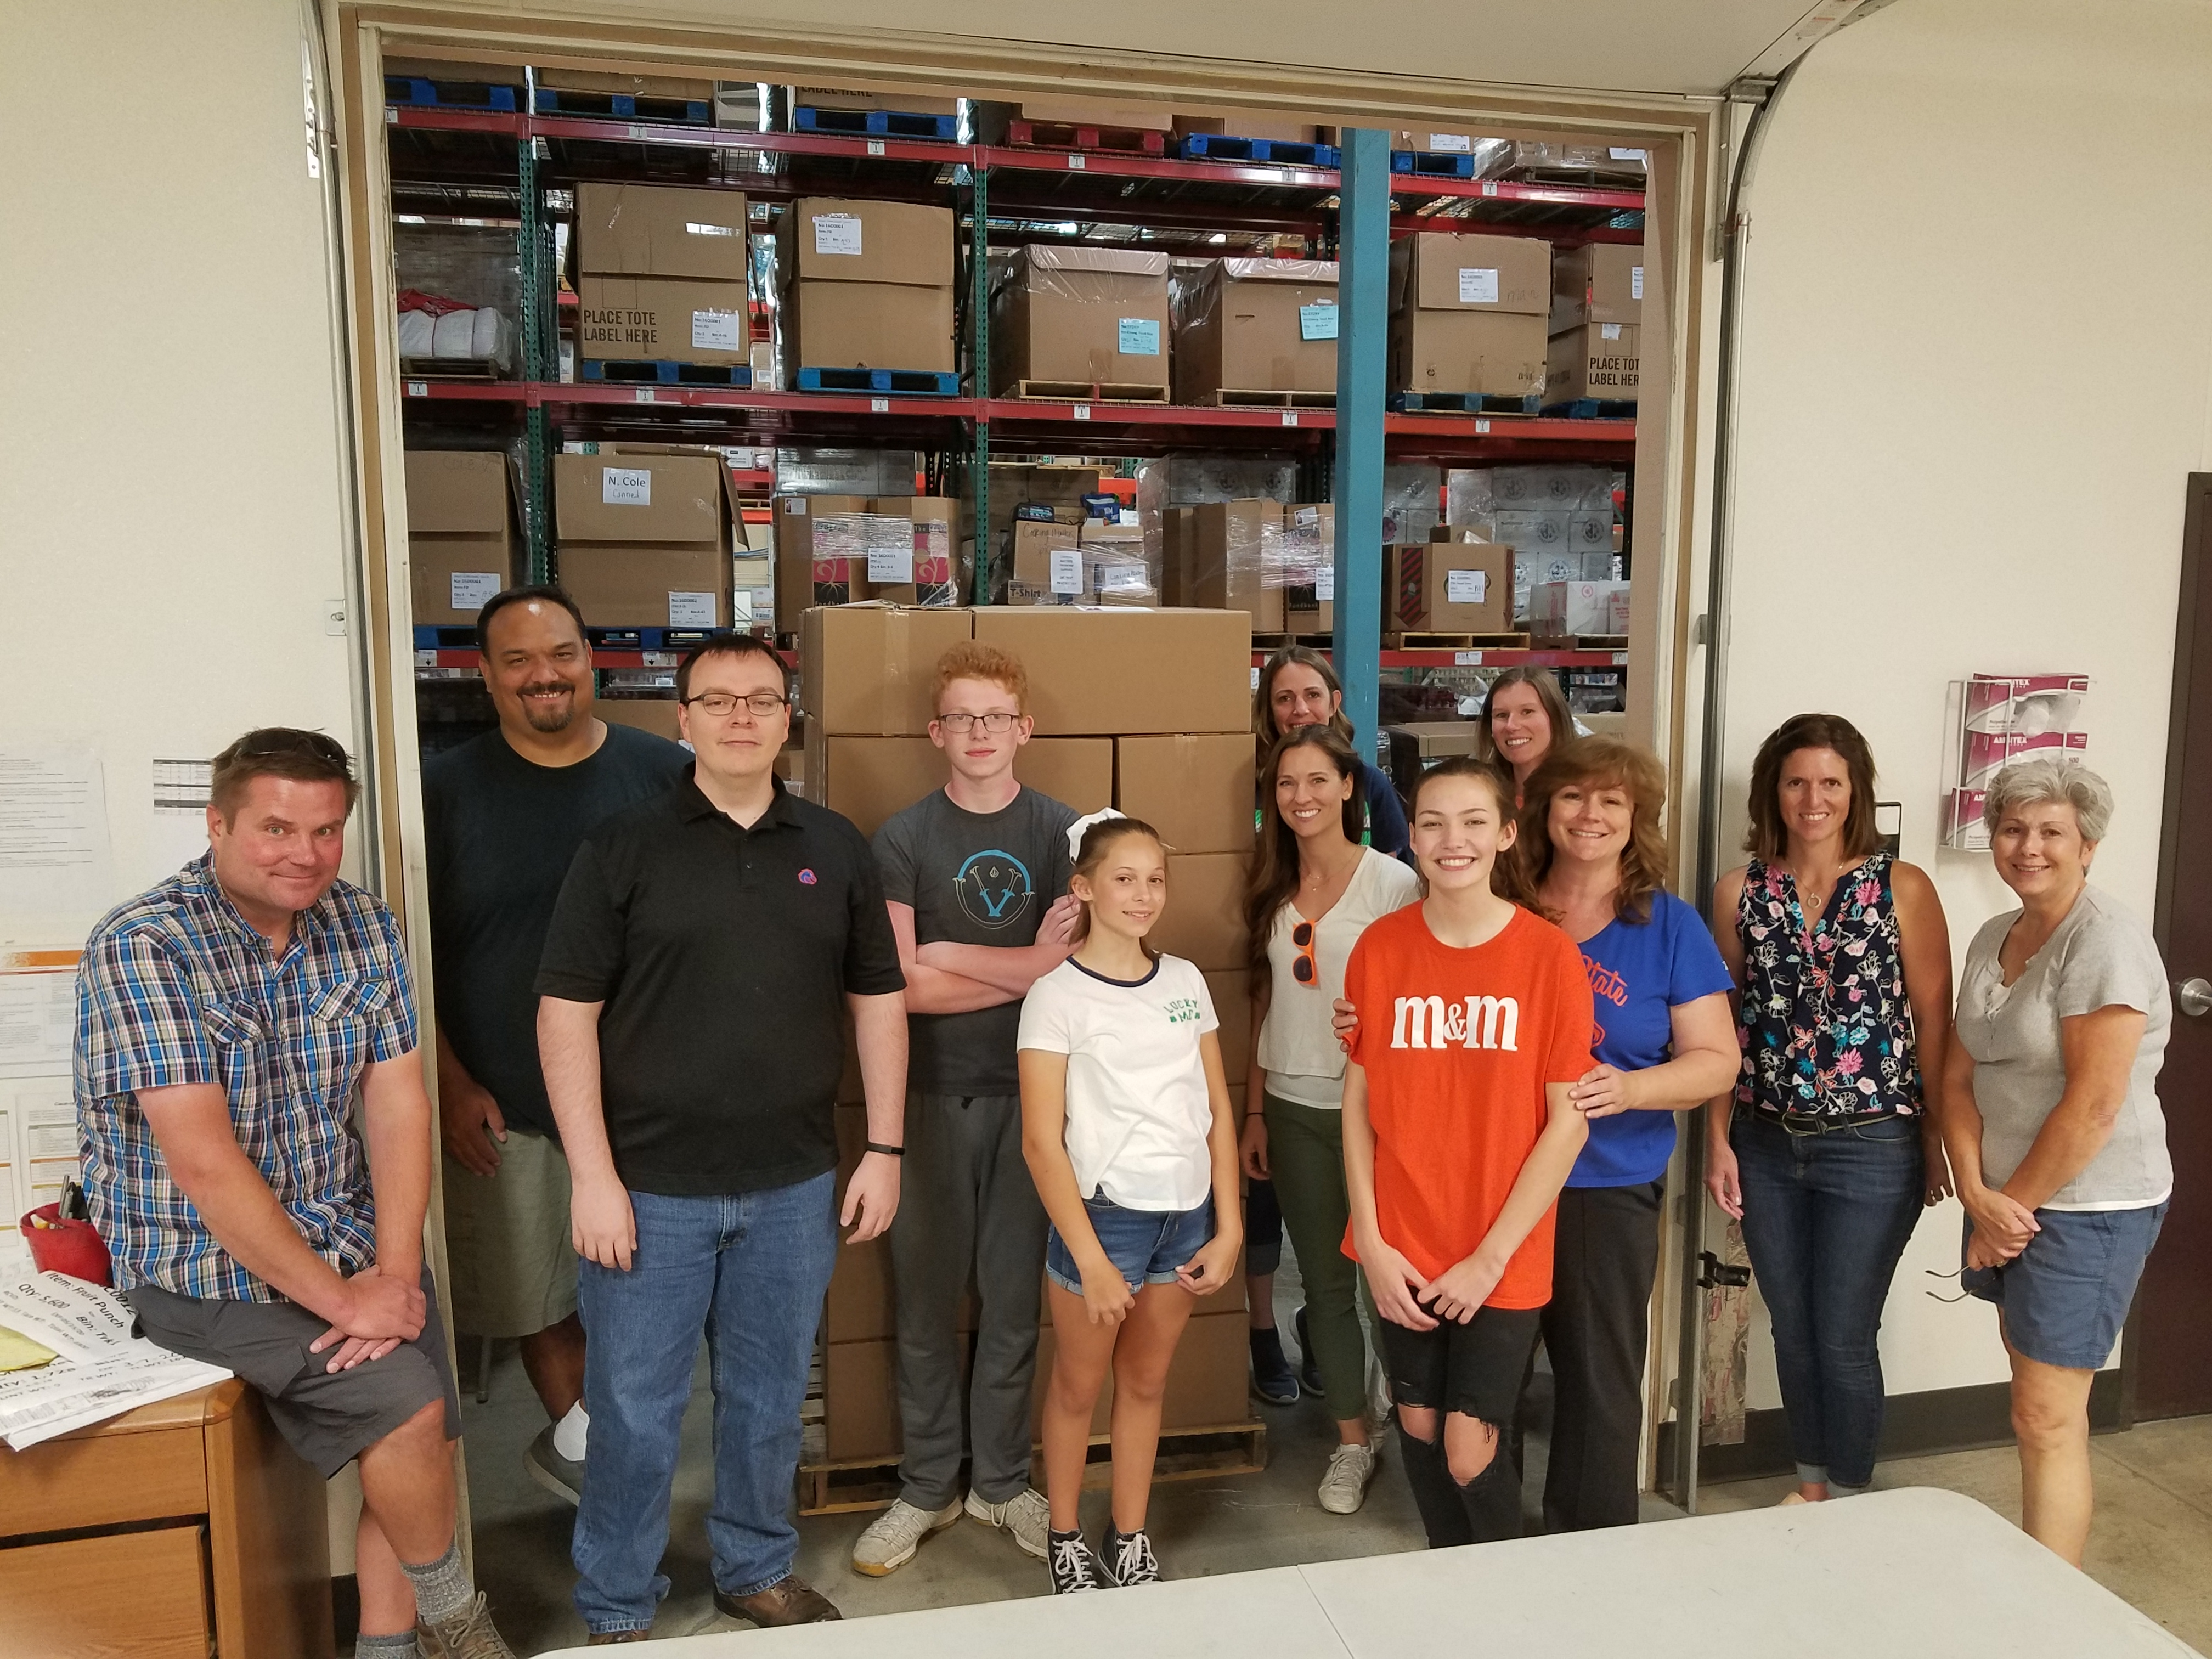 Boise State employees pose at the Idaho Food Bank while volunteering.